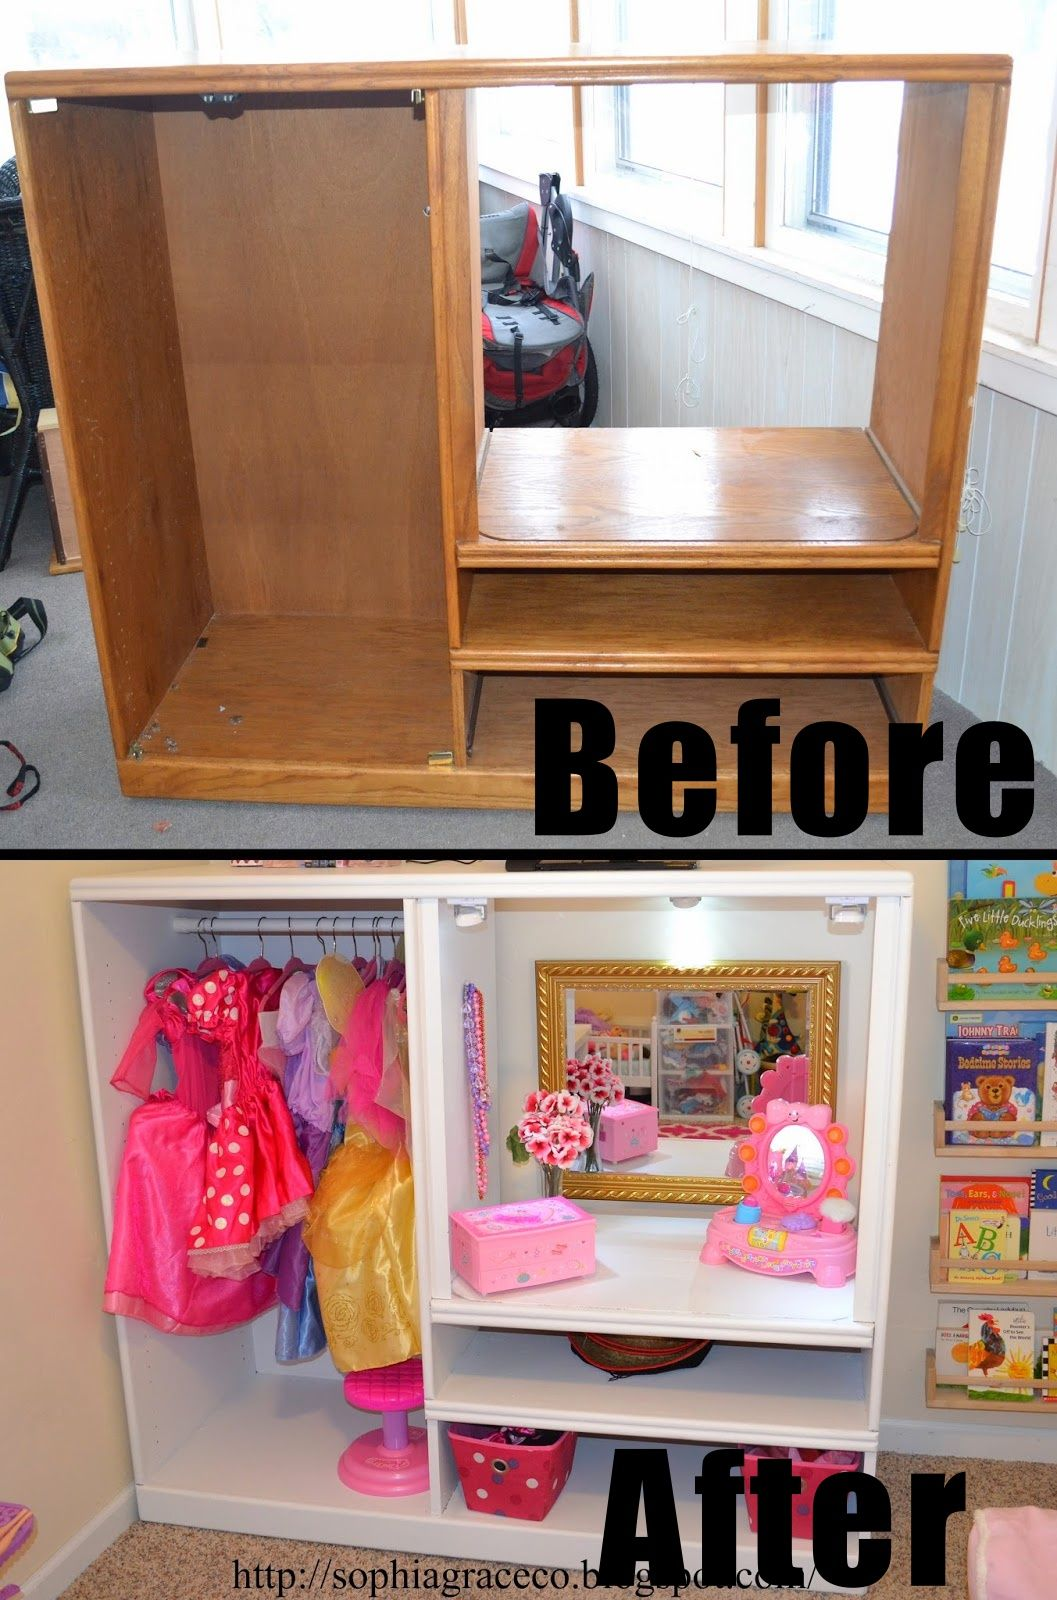 You May Have Some Old Furnitures They Look And Are Waiting For An Opportunity To Throw Them Away Or Put Outside By Curb Free Pickup